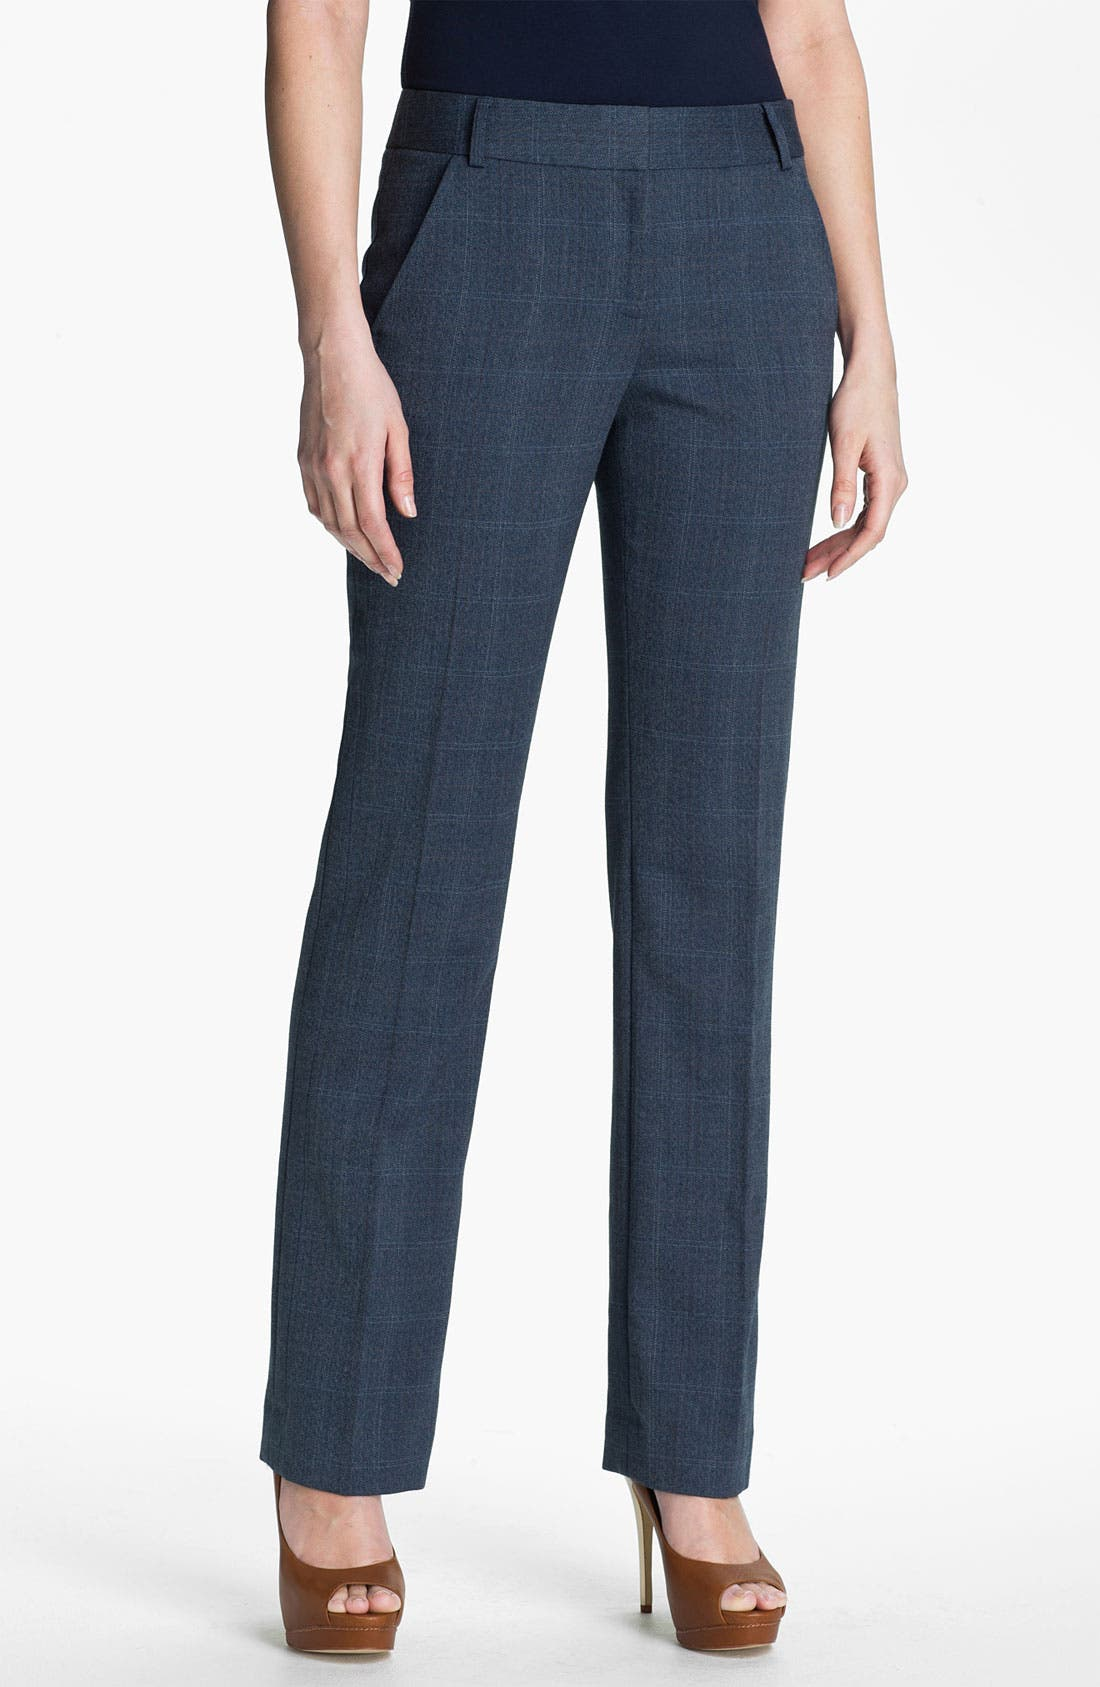 Main Image - Anne Klein Patterned Menswear Pants